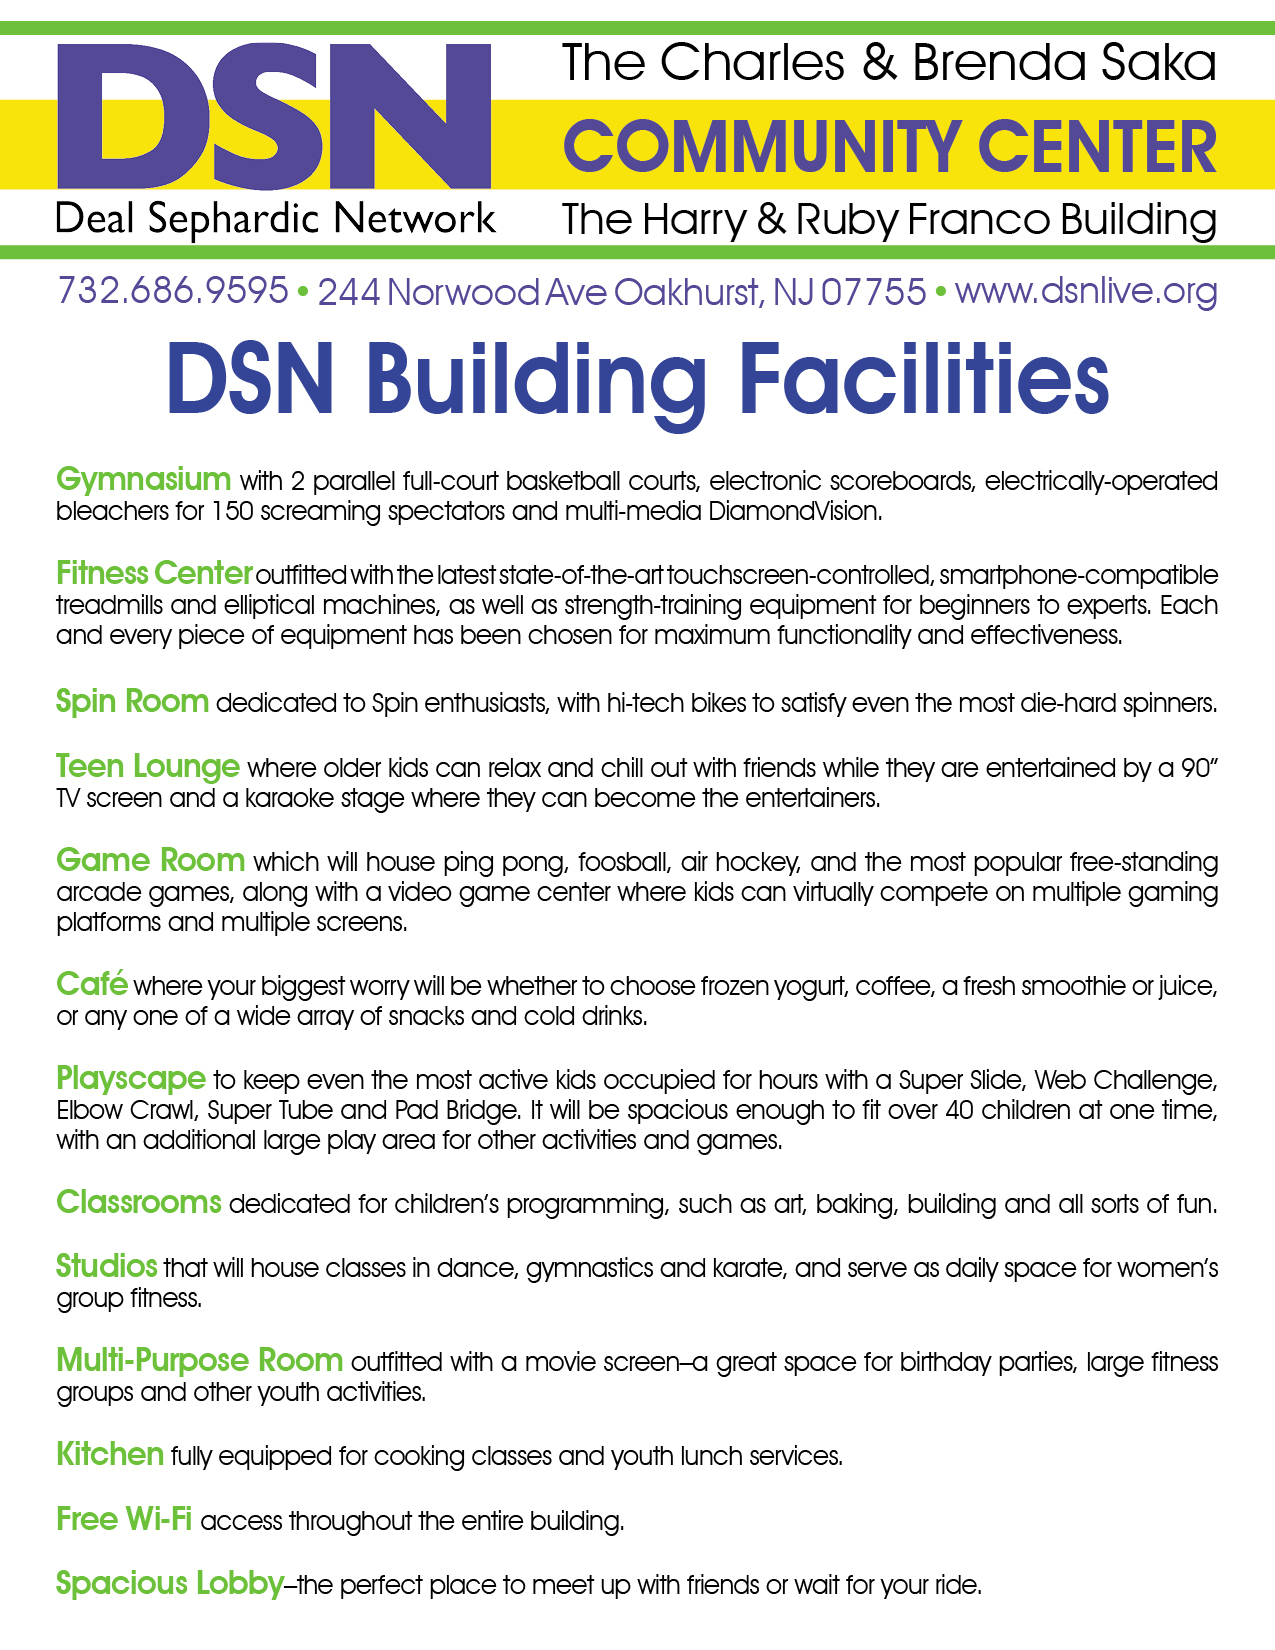 DSN Building Facilities